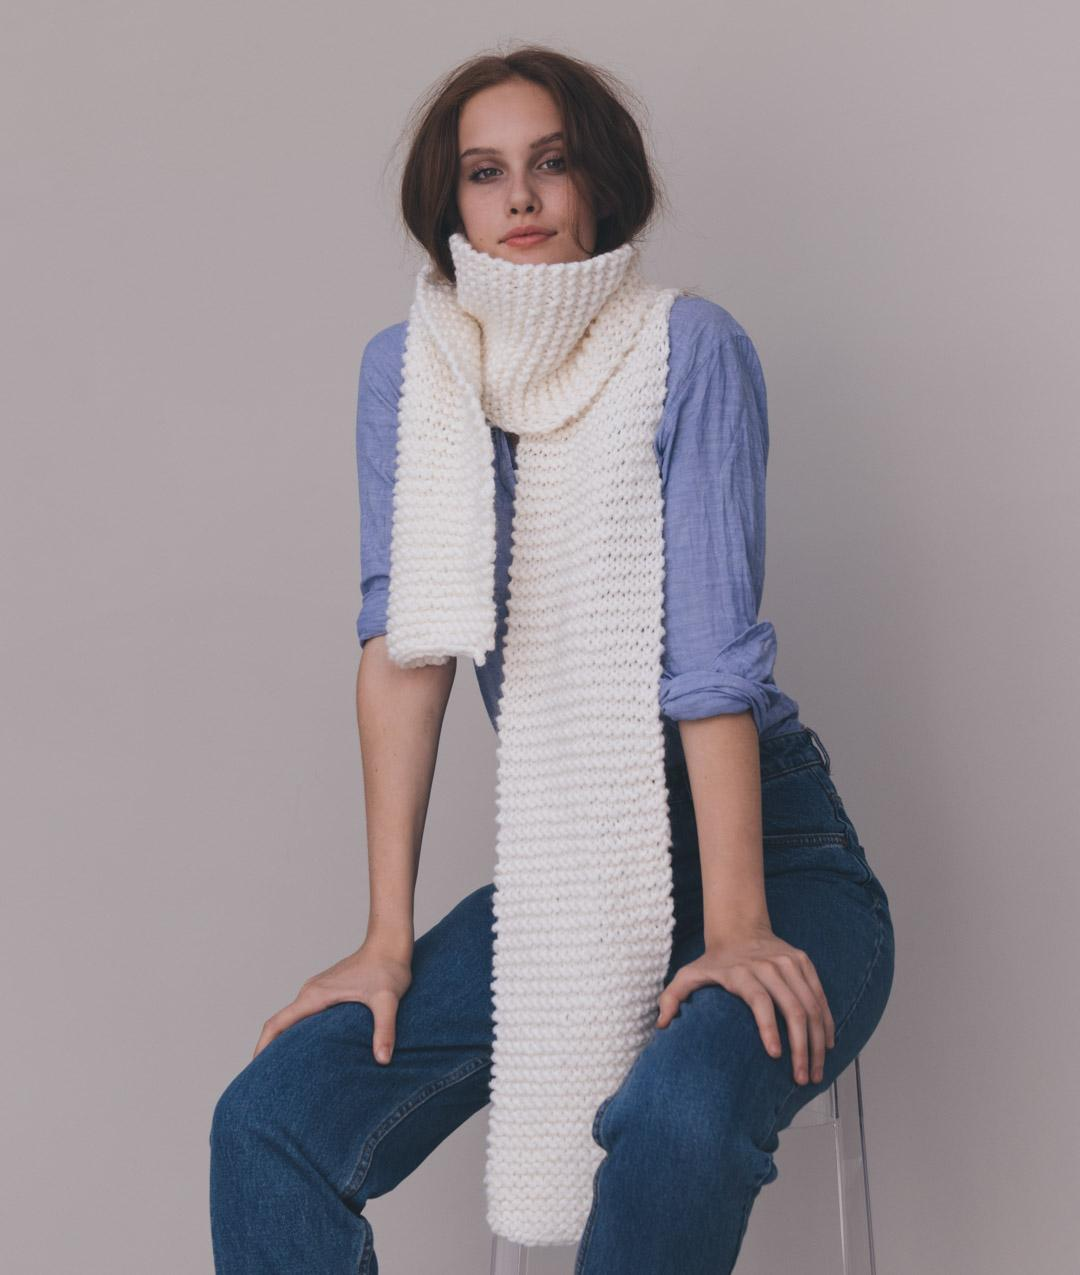 Fall / Winter 2018-19 Collection - Scarves and SnoodsFall / Winter 2018-19 Collection - Scarves and Snoods - NAIMI SCARF - 1